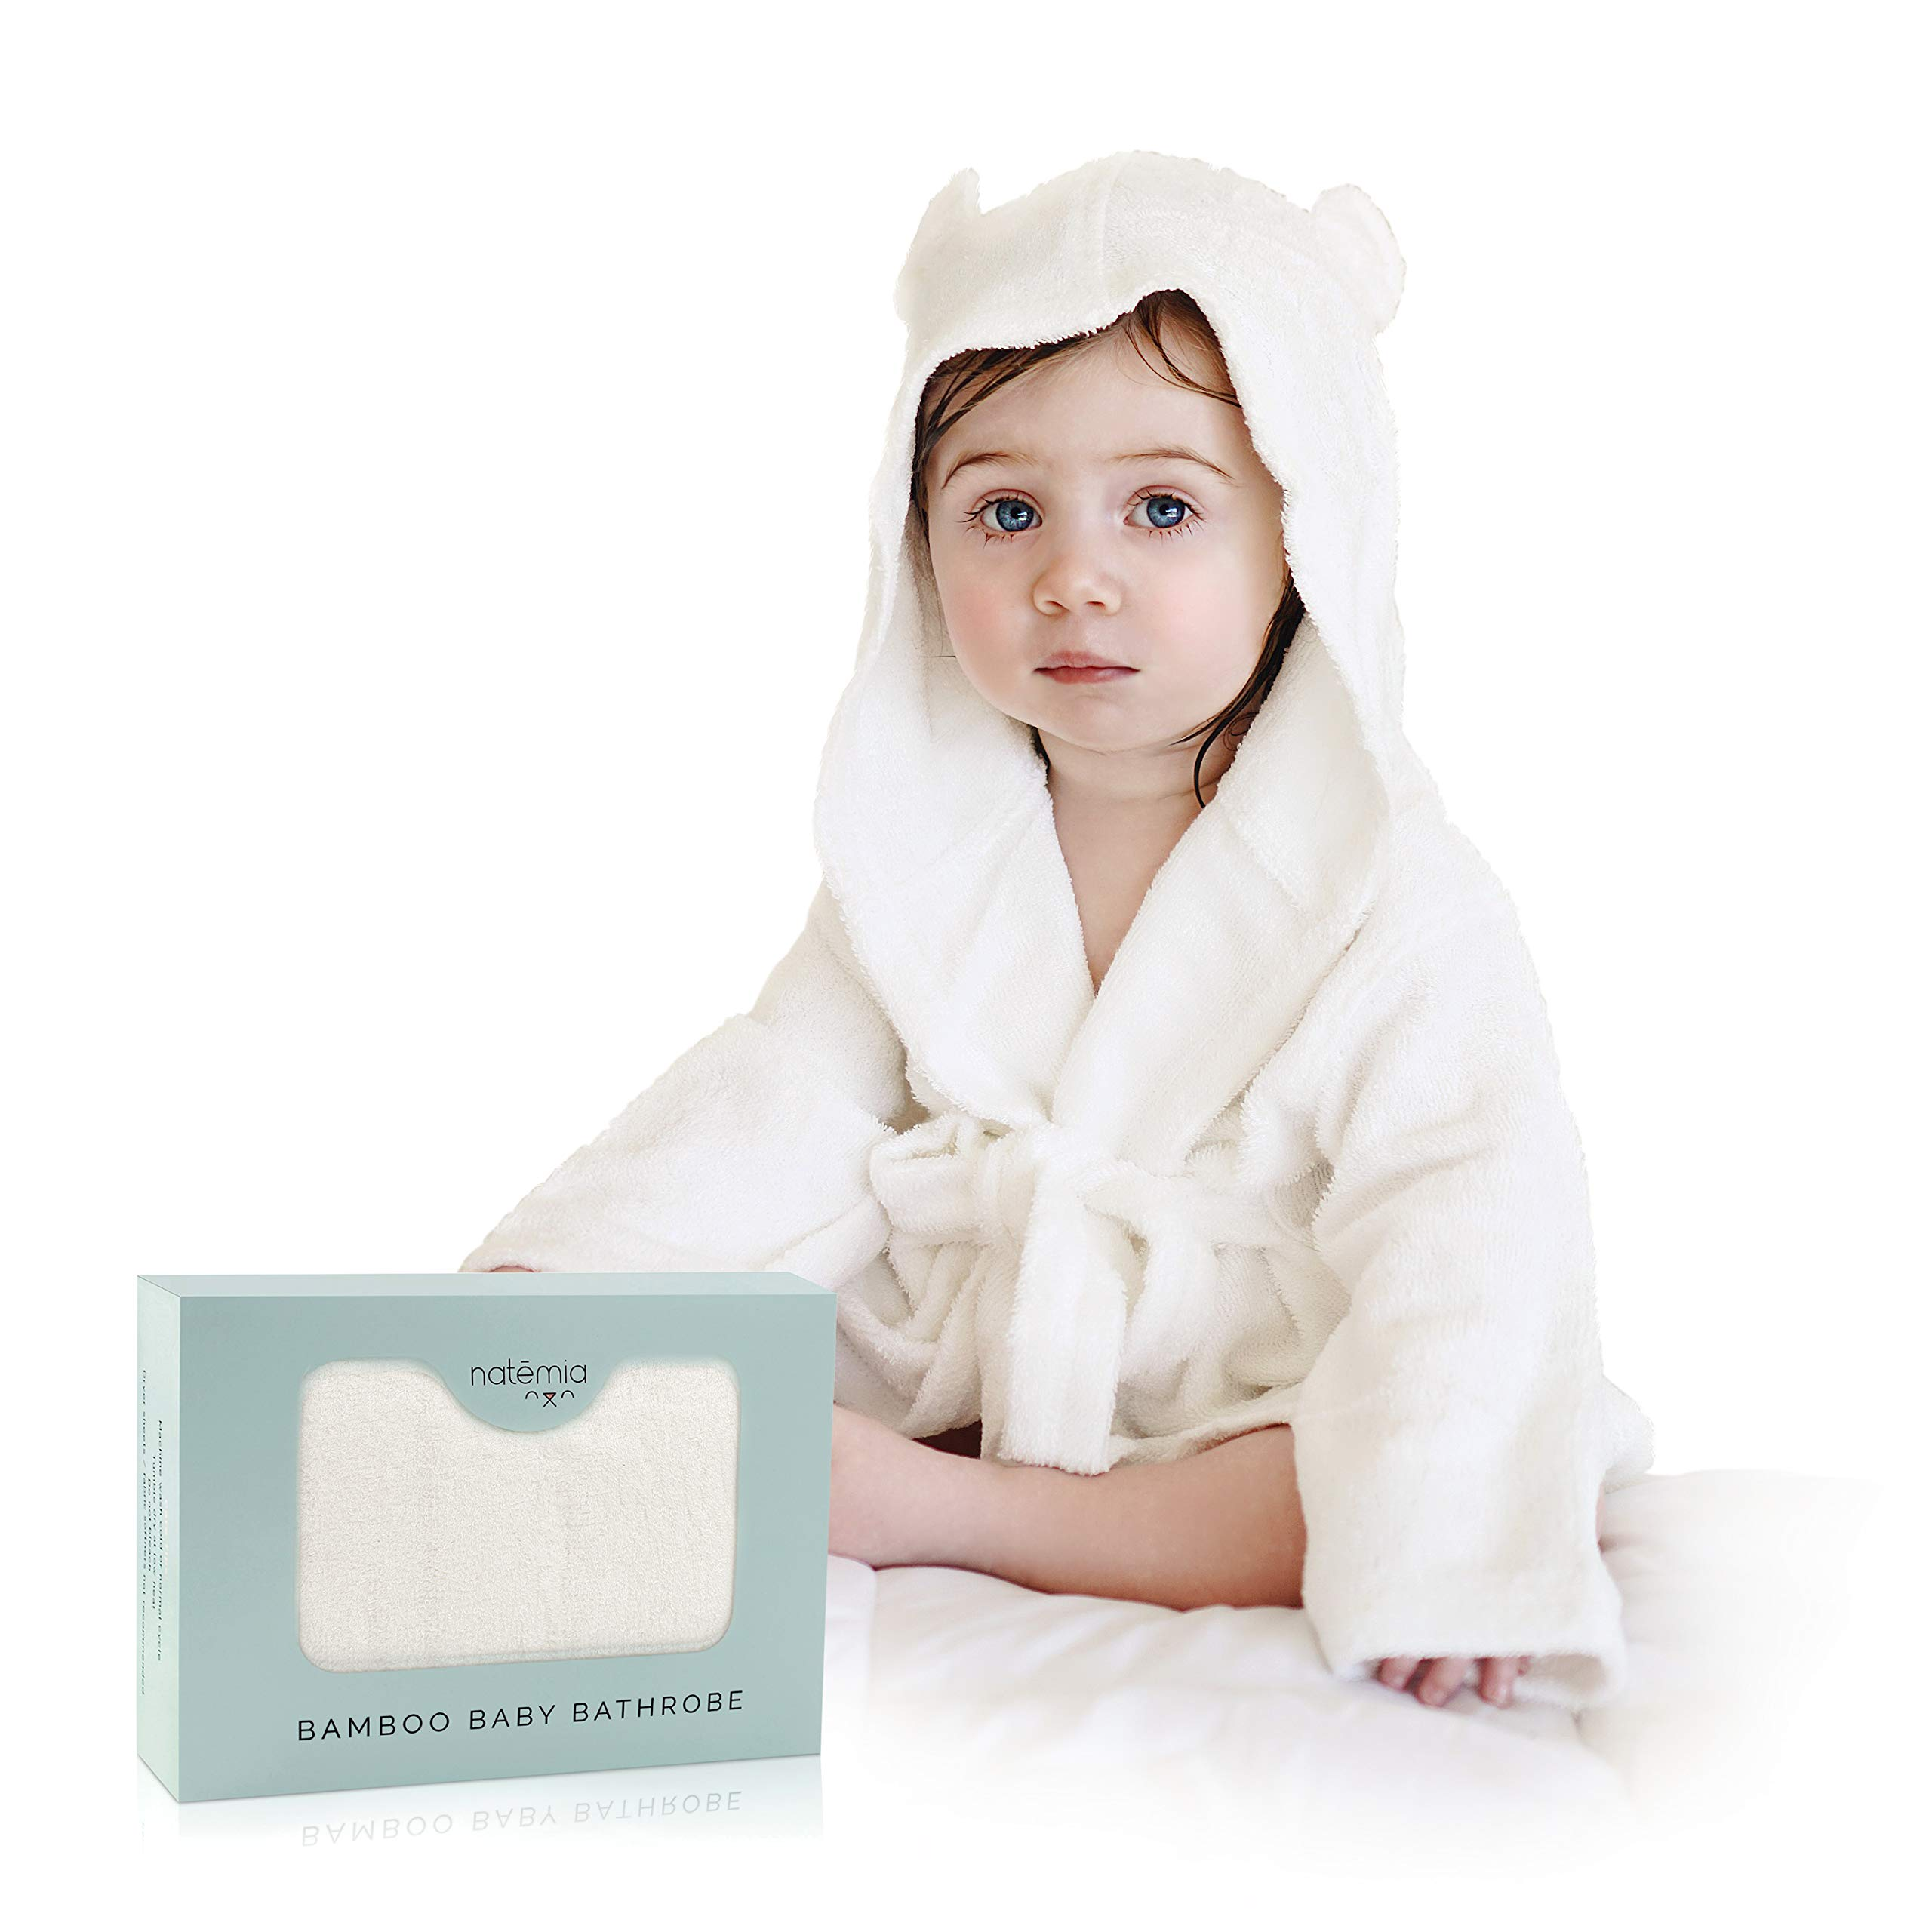 Extra Soft Bamboo Hooded Bathrobe For Kids by Natemia | Super Absorbent and Hypoallergenic | Ideal Baby Registry Gift